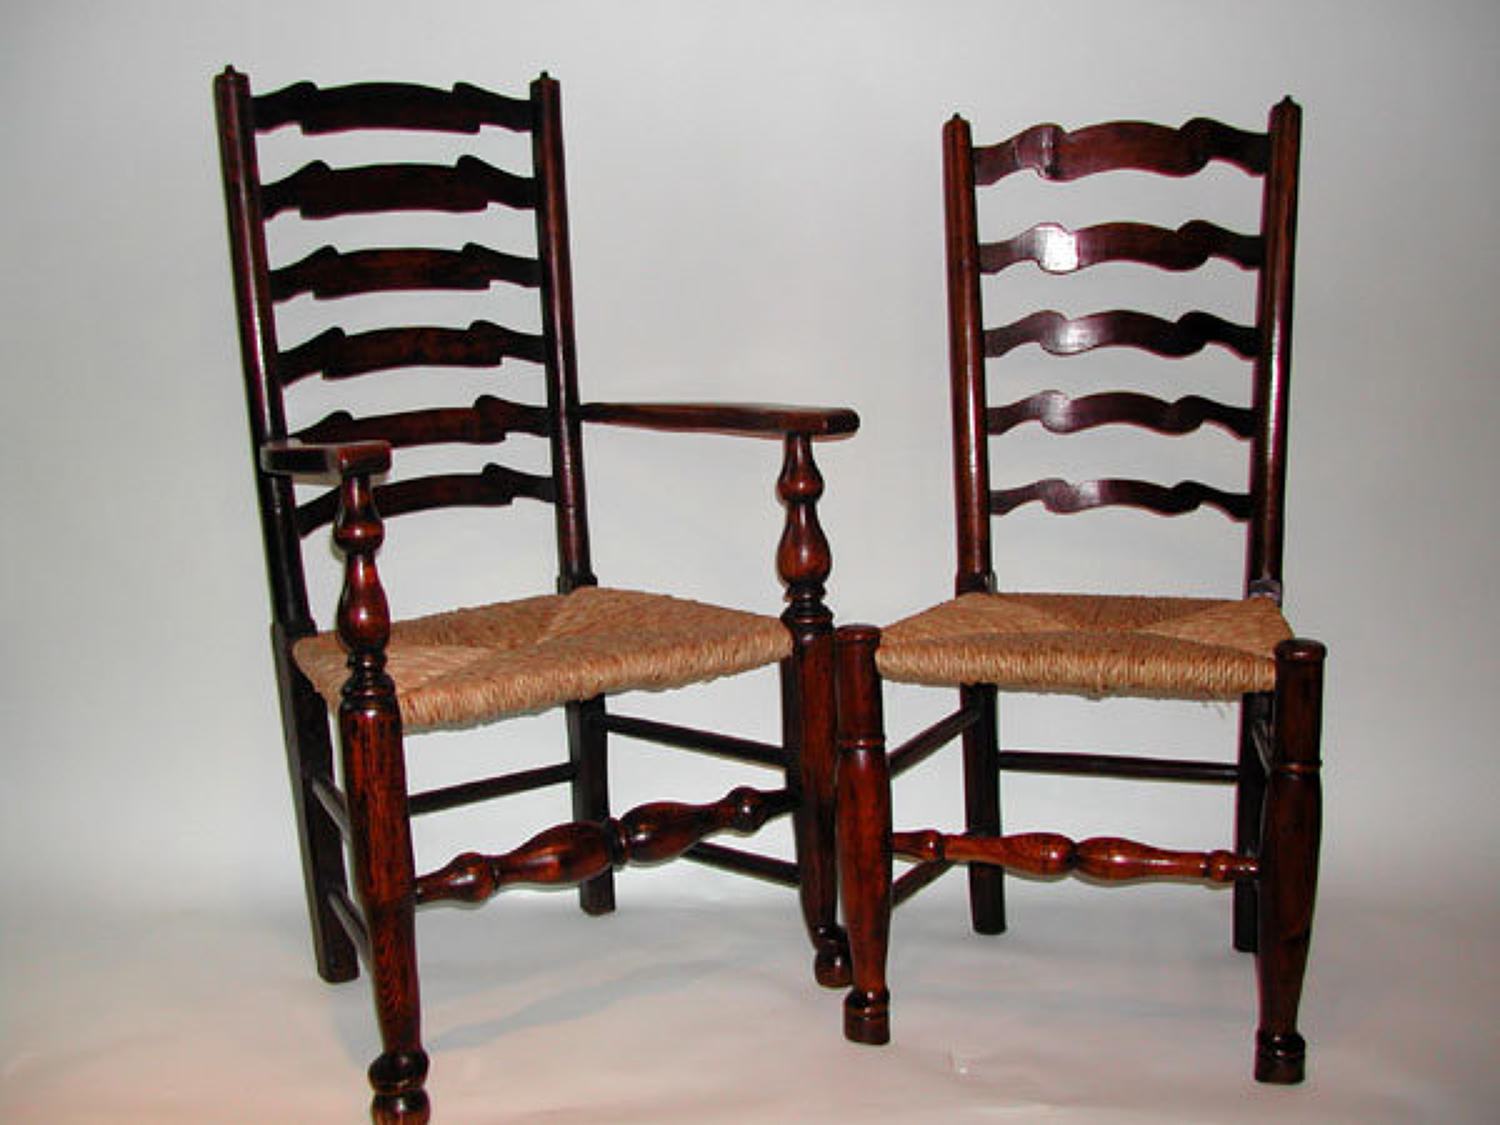 18thc Waveyline Set of Ash Ladderback Chairs.  English C1780 - C1800